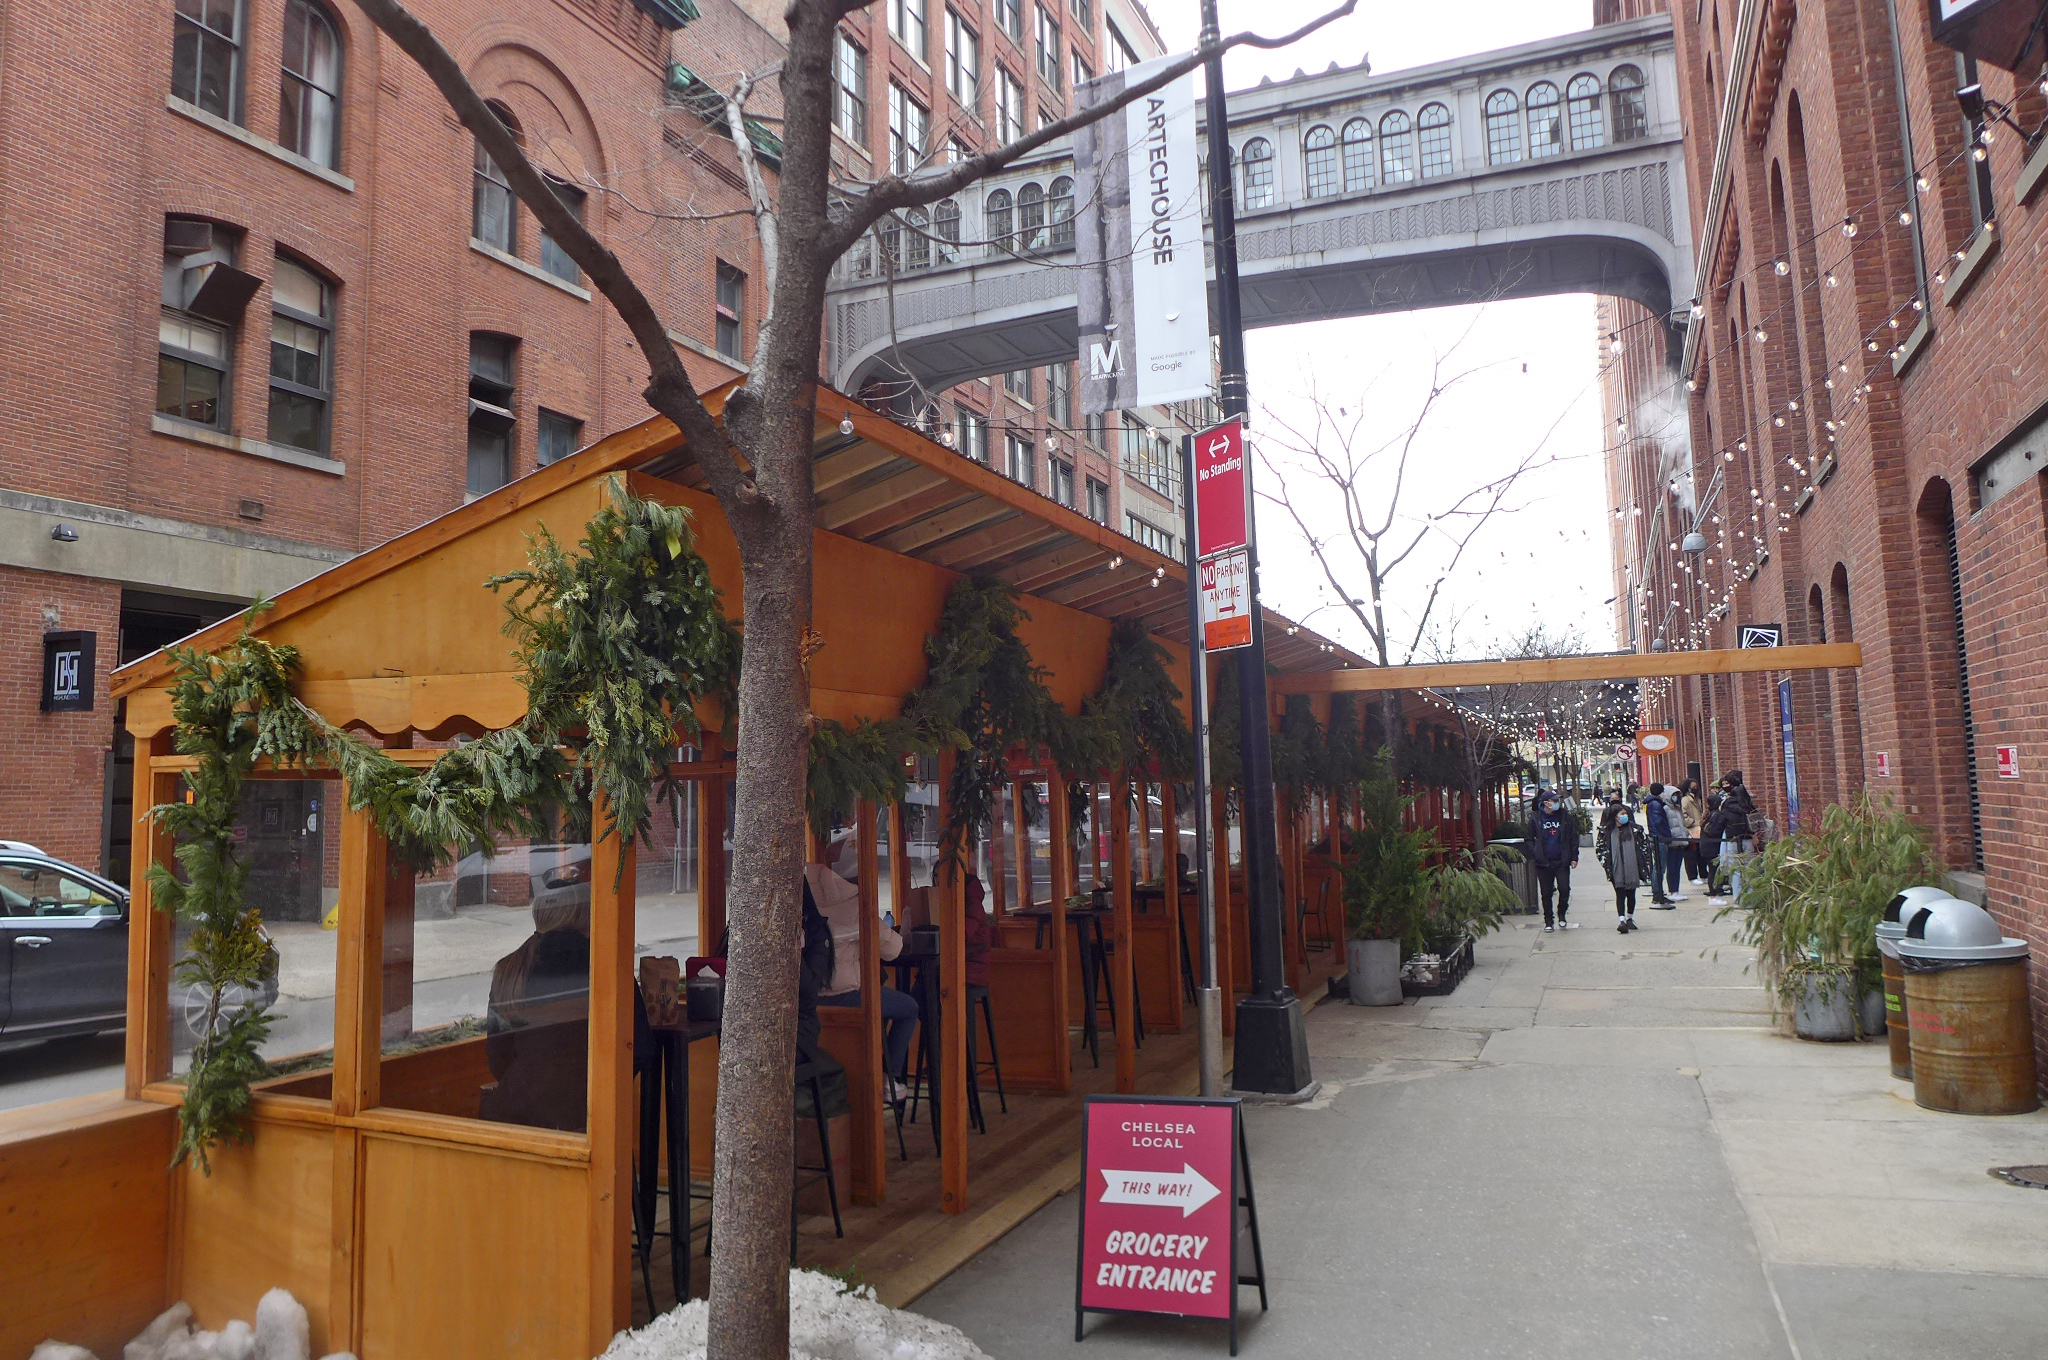 Wooden outdoor dining kiosks in foreground with bridge between two ancient brick buildings up above.